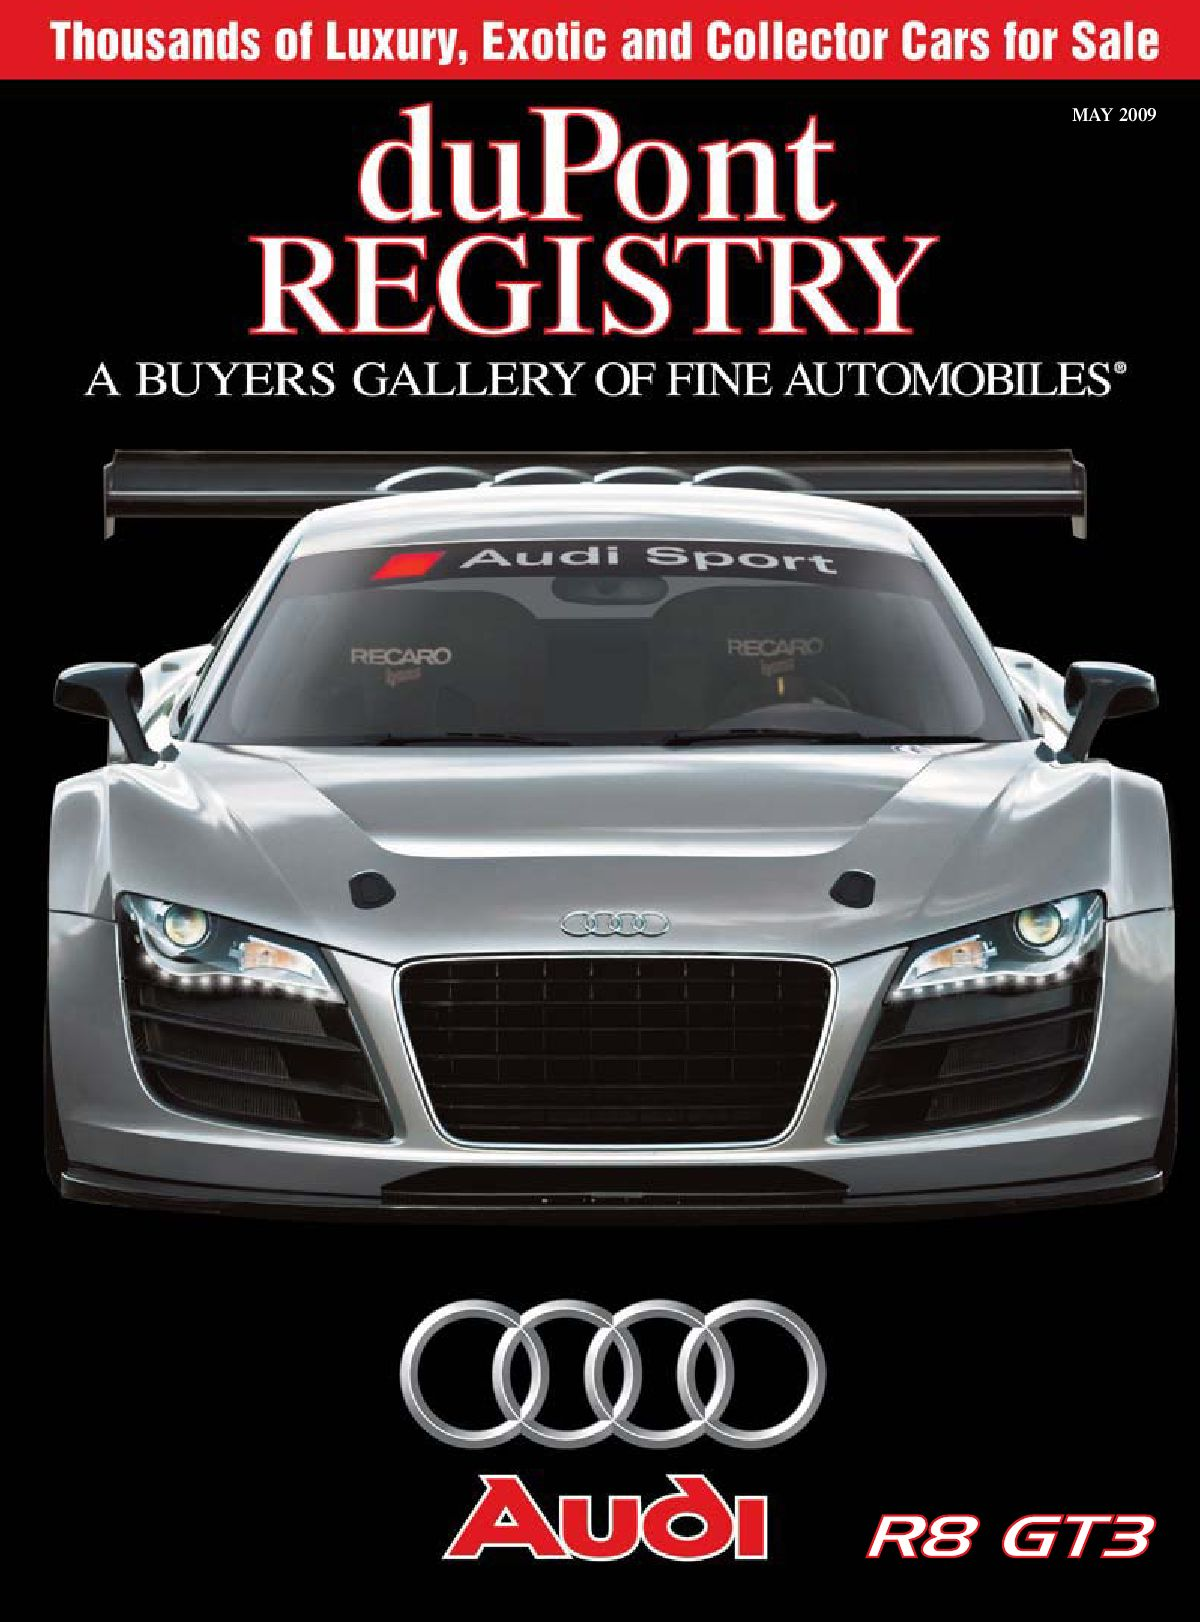 duPontREGISTRY Autos May 2009 by duPont REGISTRY issuu